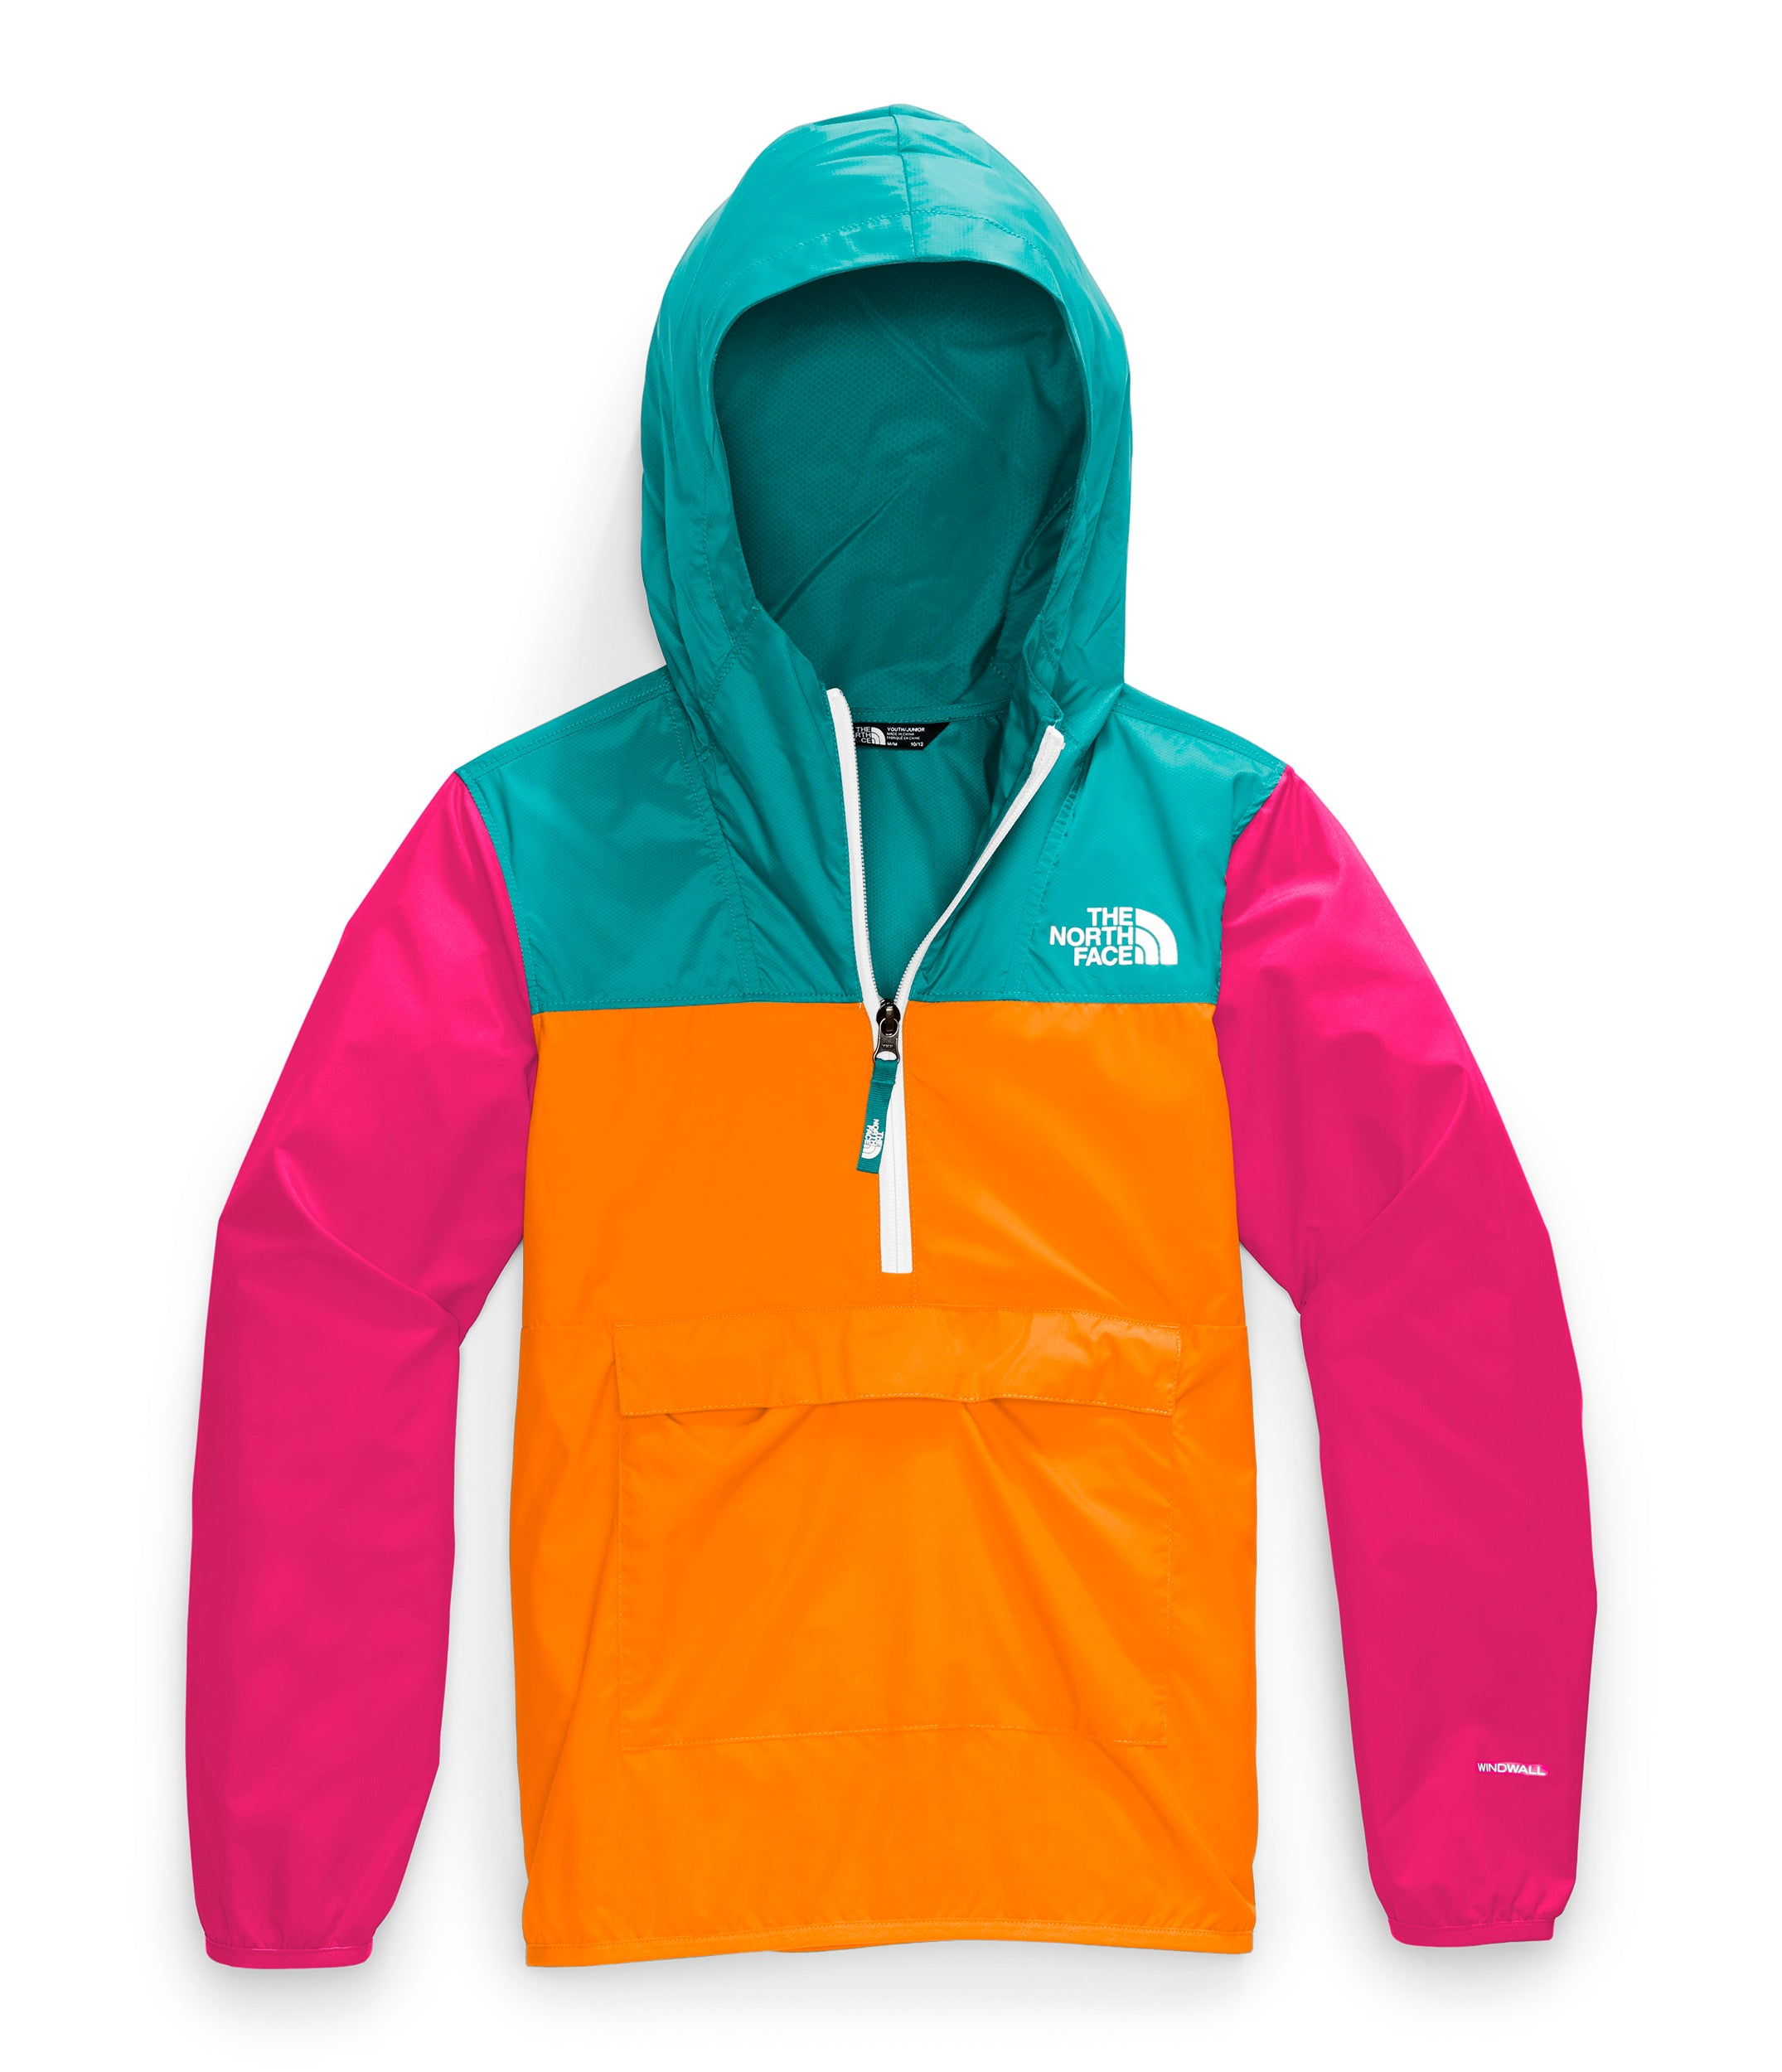 The North Face Youth Fanorak Jacket